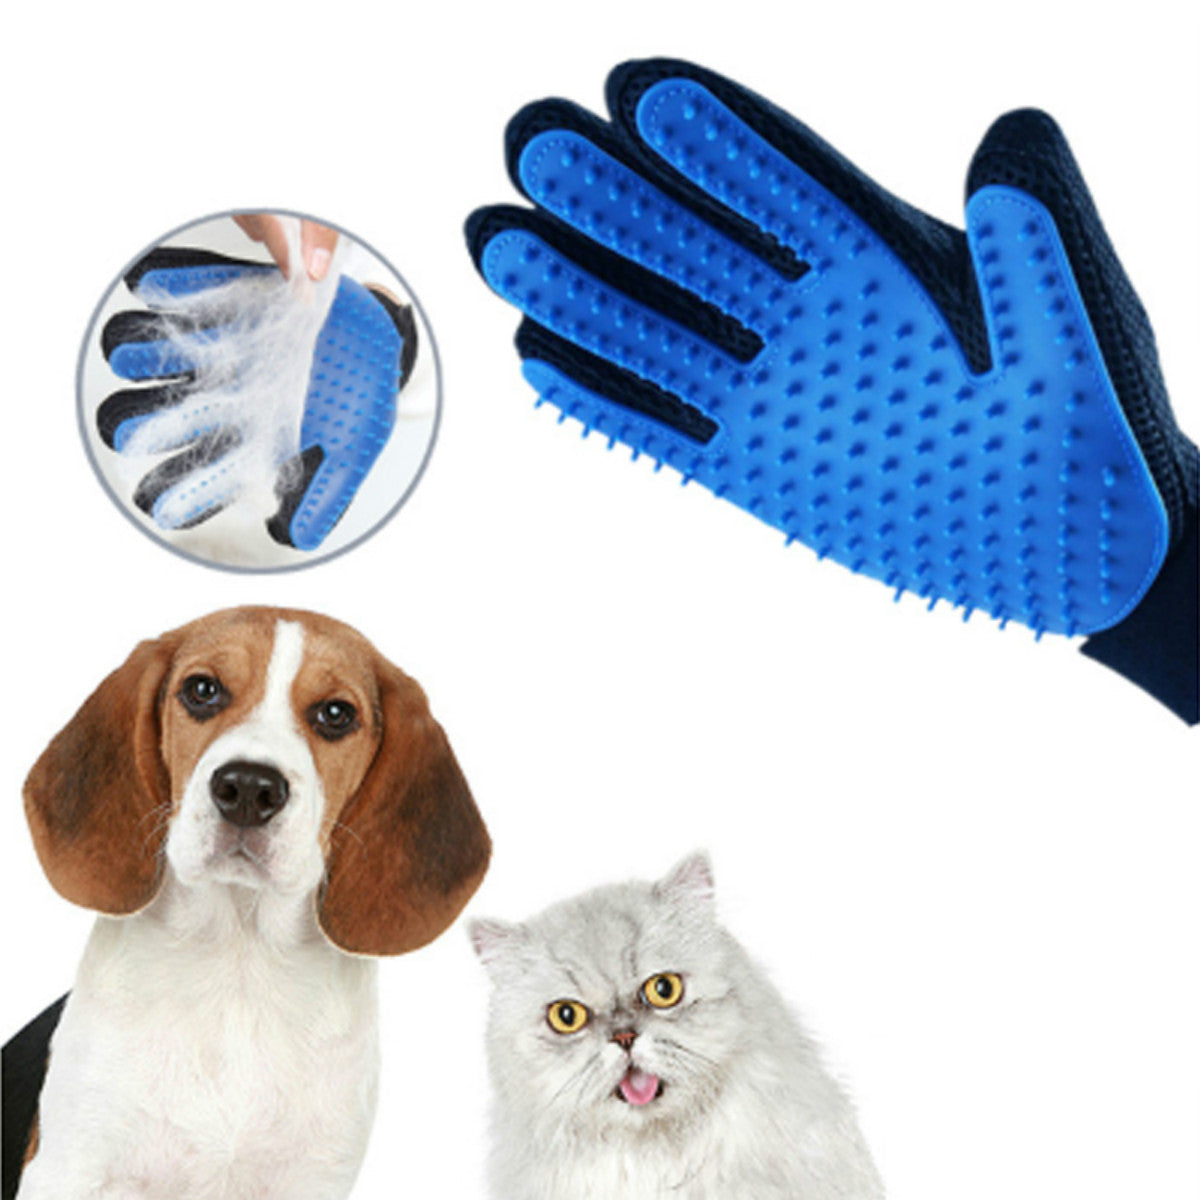 Pet Grooming Glove - Gentle Deshedding Brush Glove - Efficient Pet Hair Remover Mitt - Enhanced Five Finger Design - Perfect for Dog & Cat with Long & Short Fur - 1 Pair